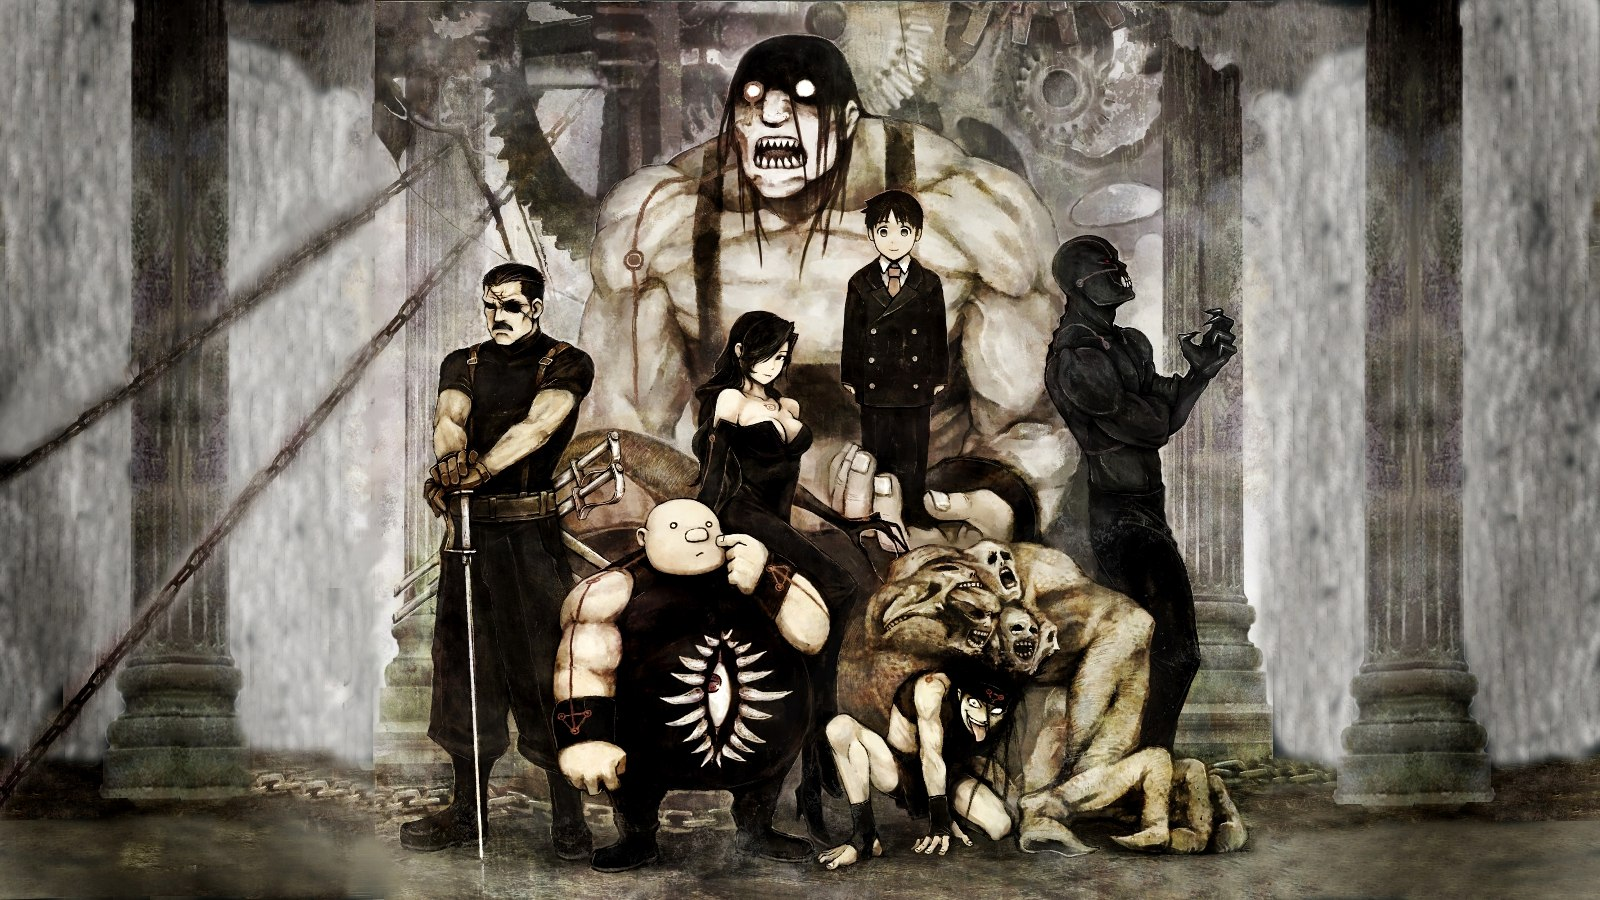 Fullmetal alchemist wallpaper 1600x900 HQ WALLPAPER   44661 1600x900